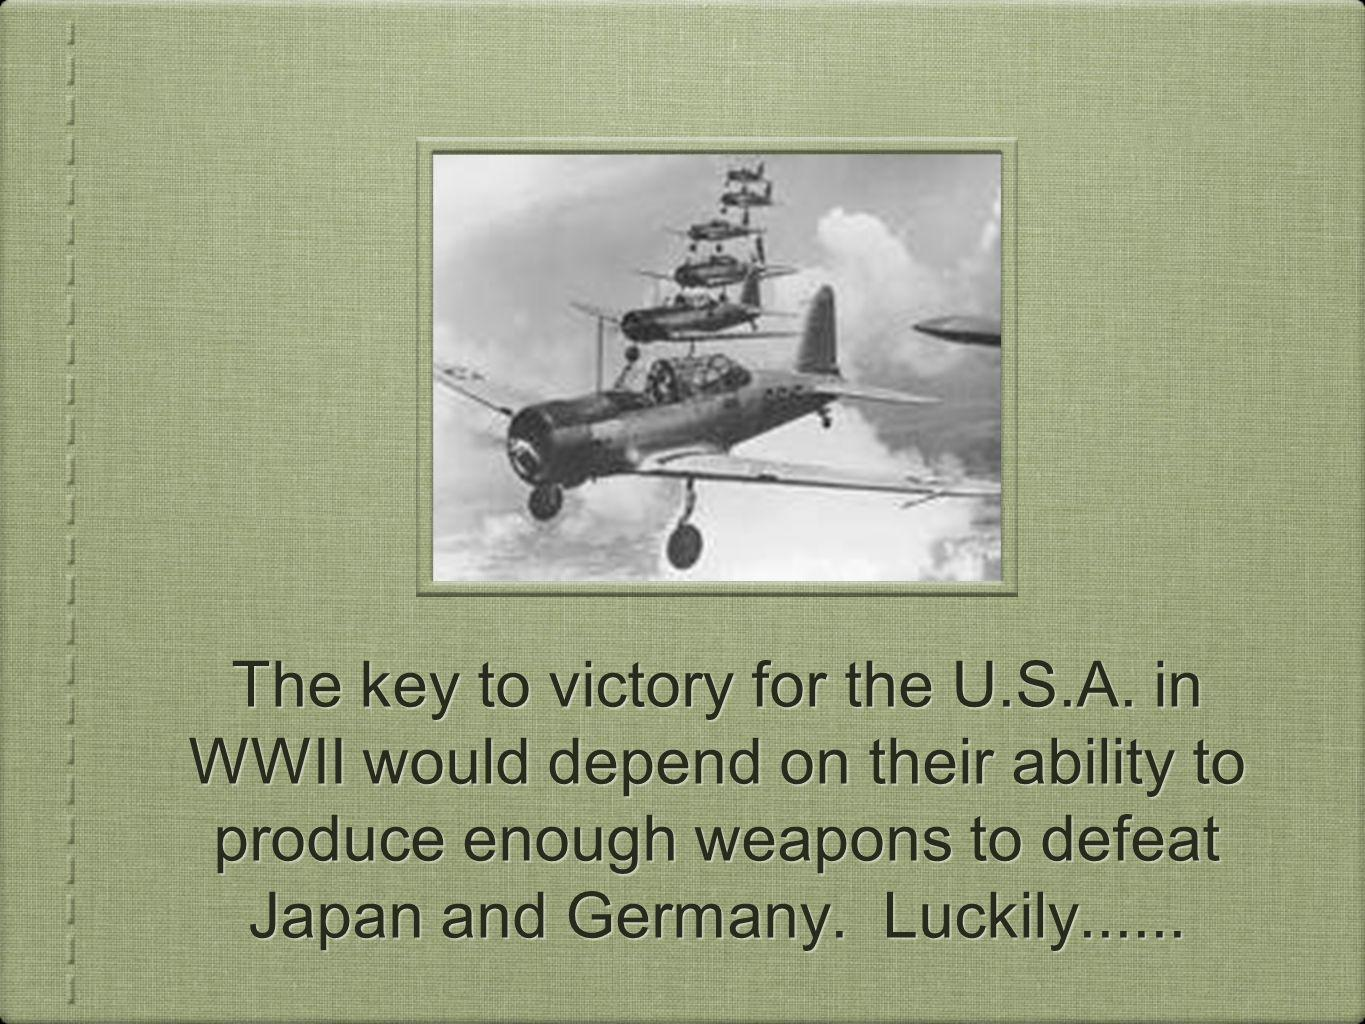 The key to victory for the U.S.A.